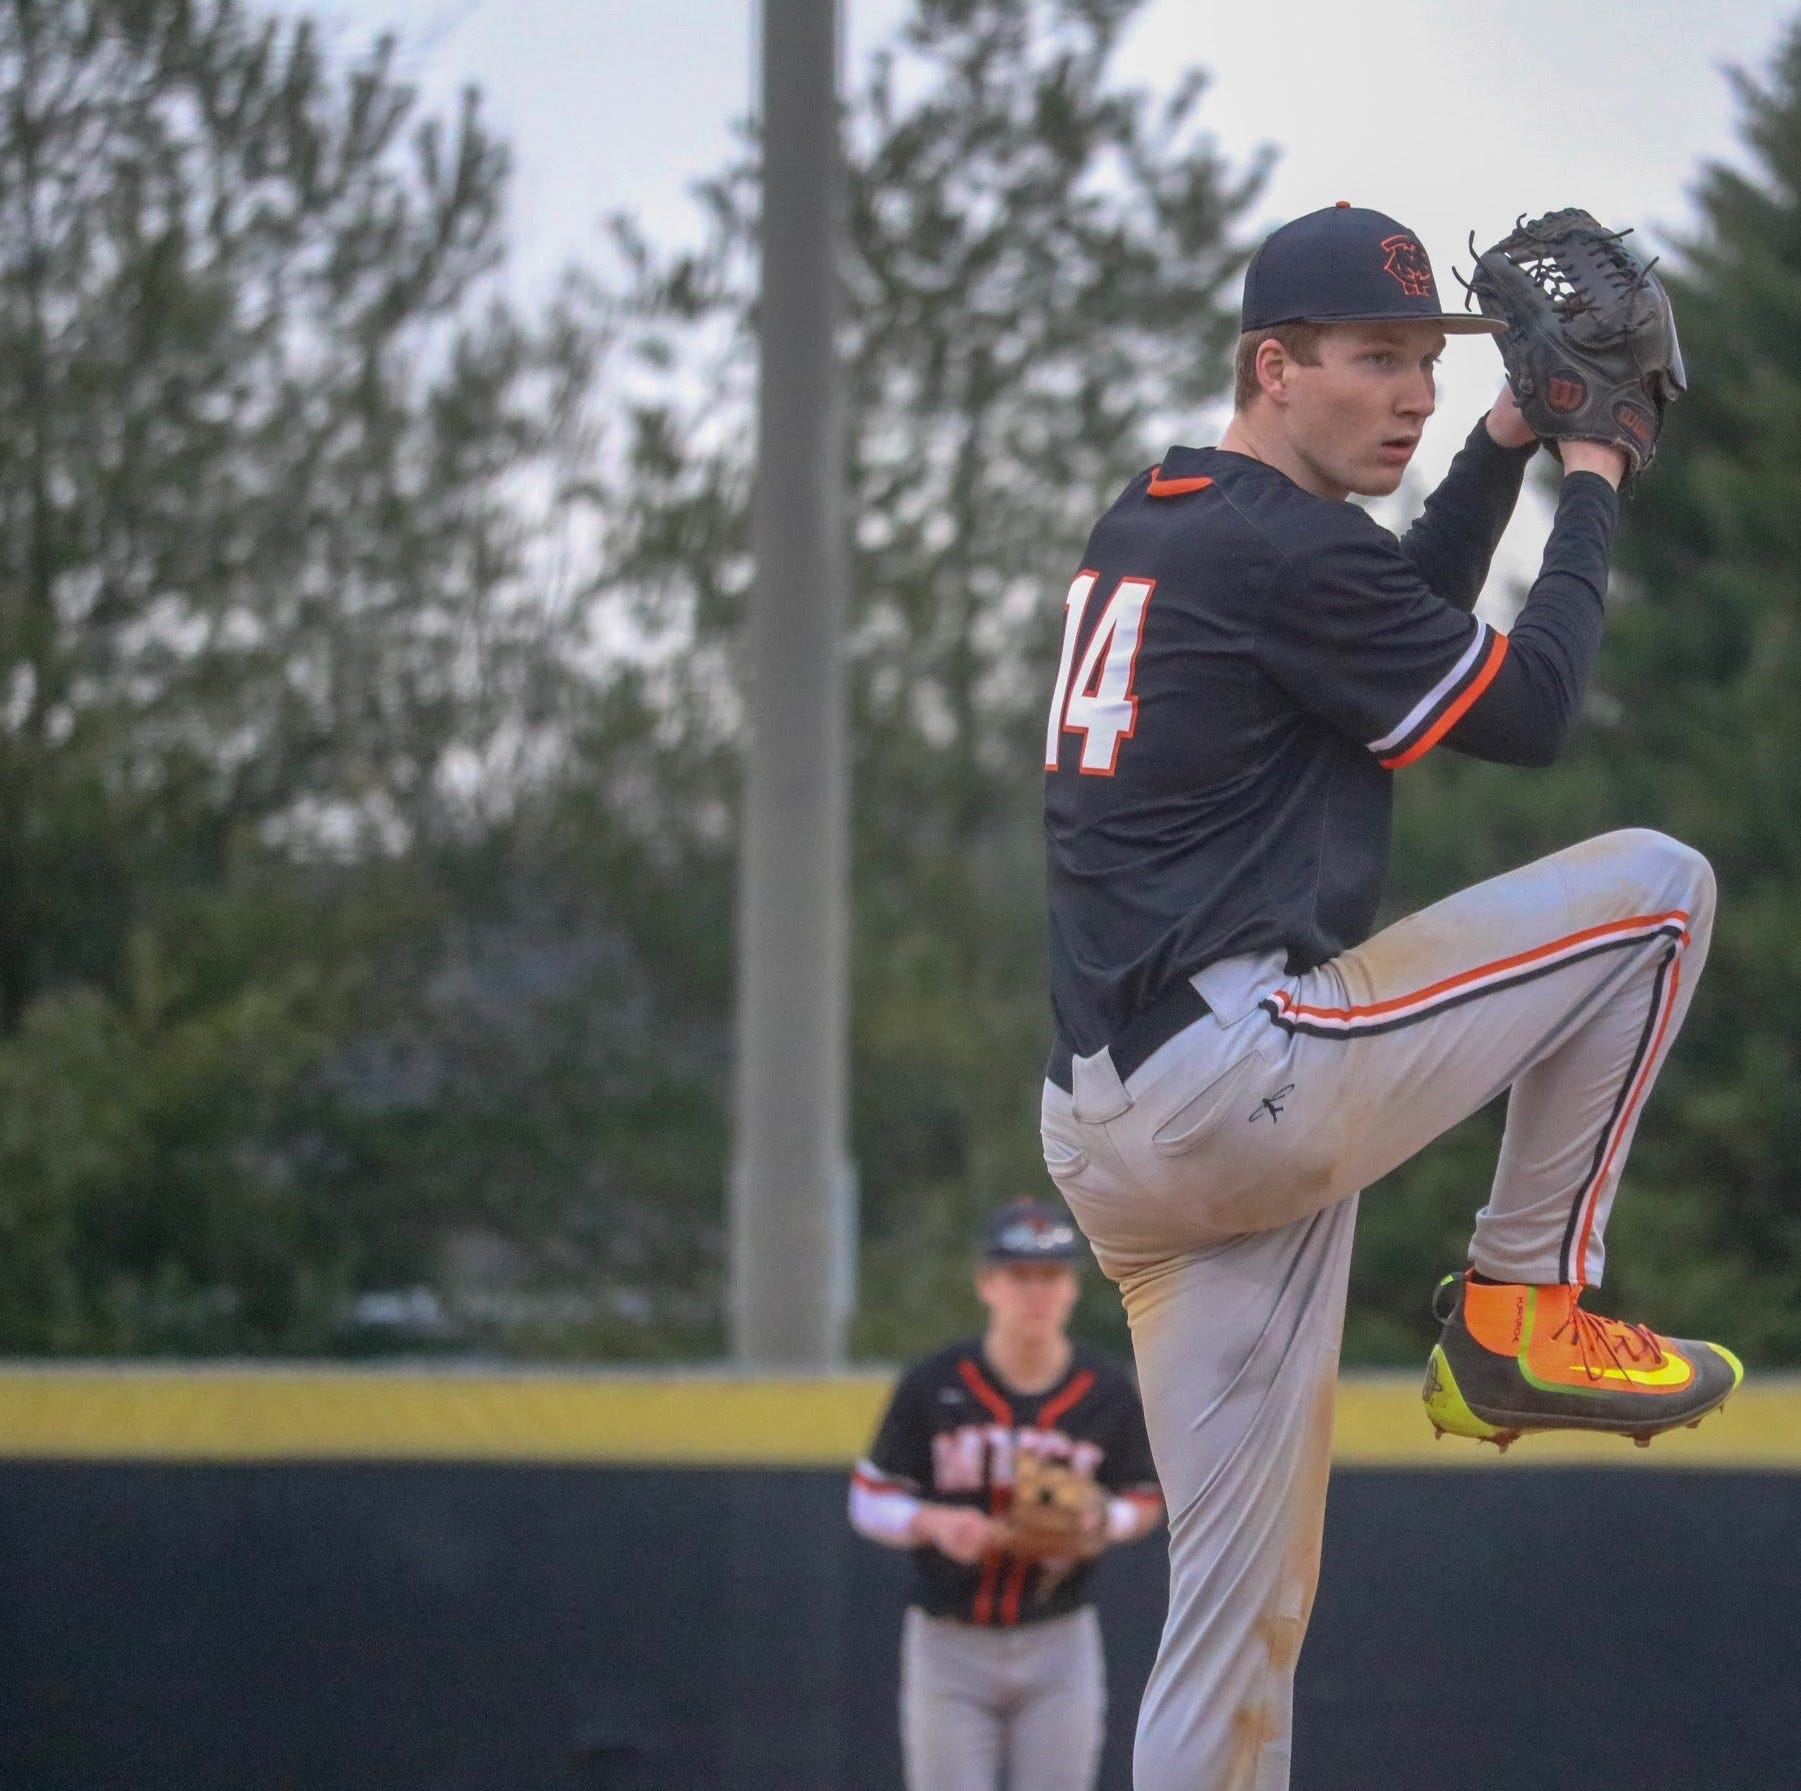 MTCS sophomore J.D. McCracken commits to Tennessee baseball